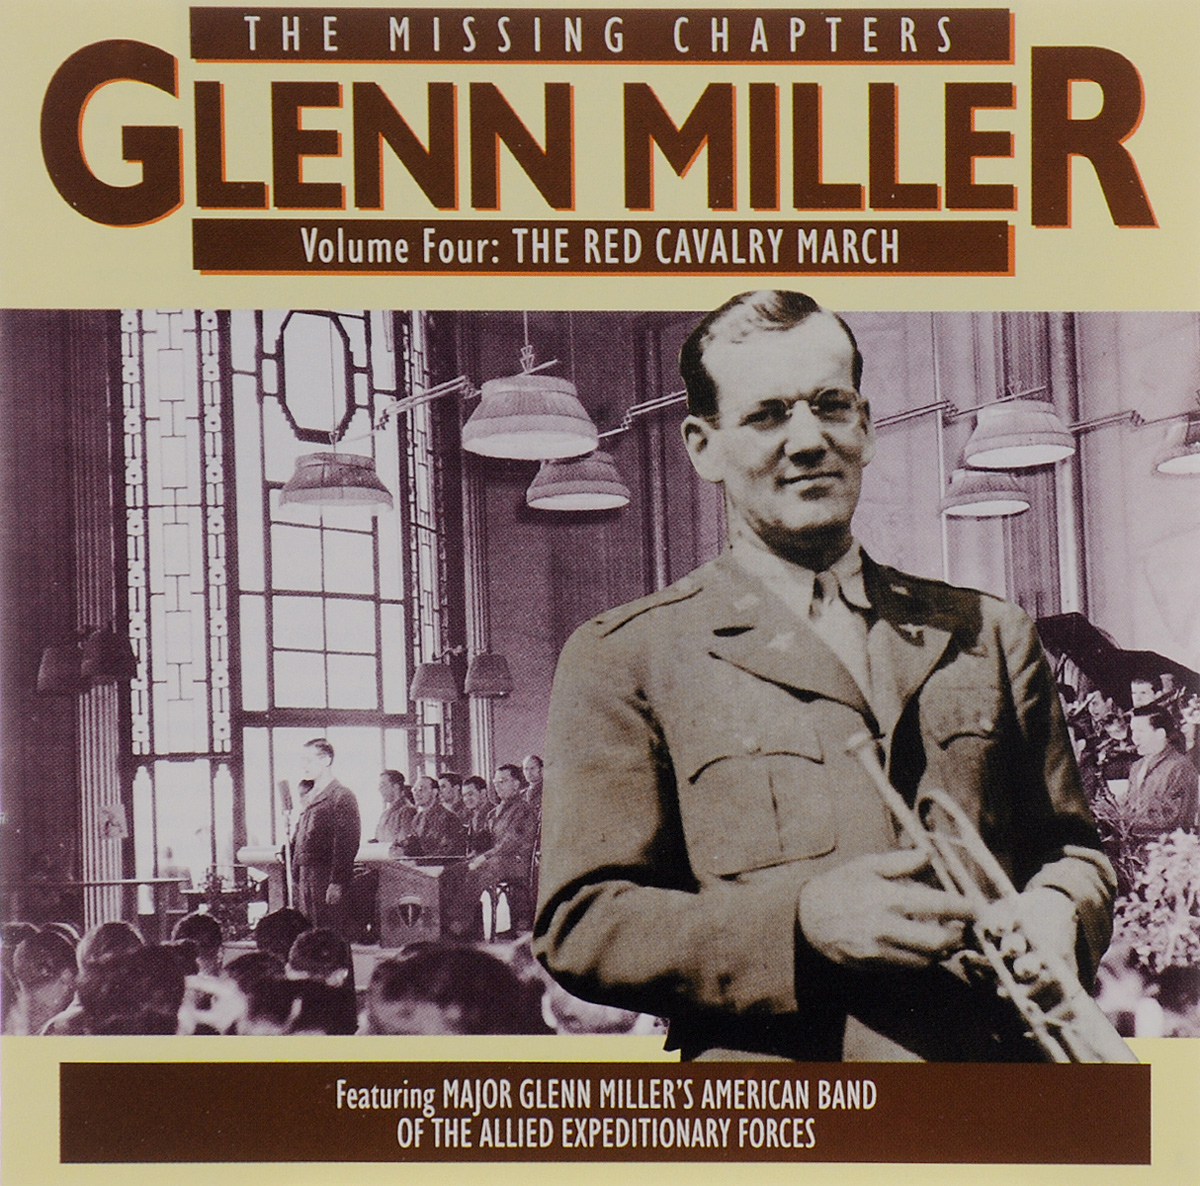 Гленн Миллер,Major Glenn Miller's American Band Of The Allied Expeditionary Forces Glenn Miller. The Missing Chapters. Volume 4. The Red Cavalry March glenn taylor the ballad of trenchmouth taggart